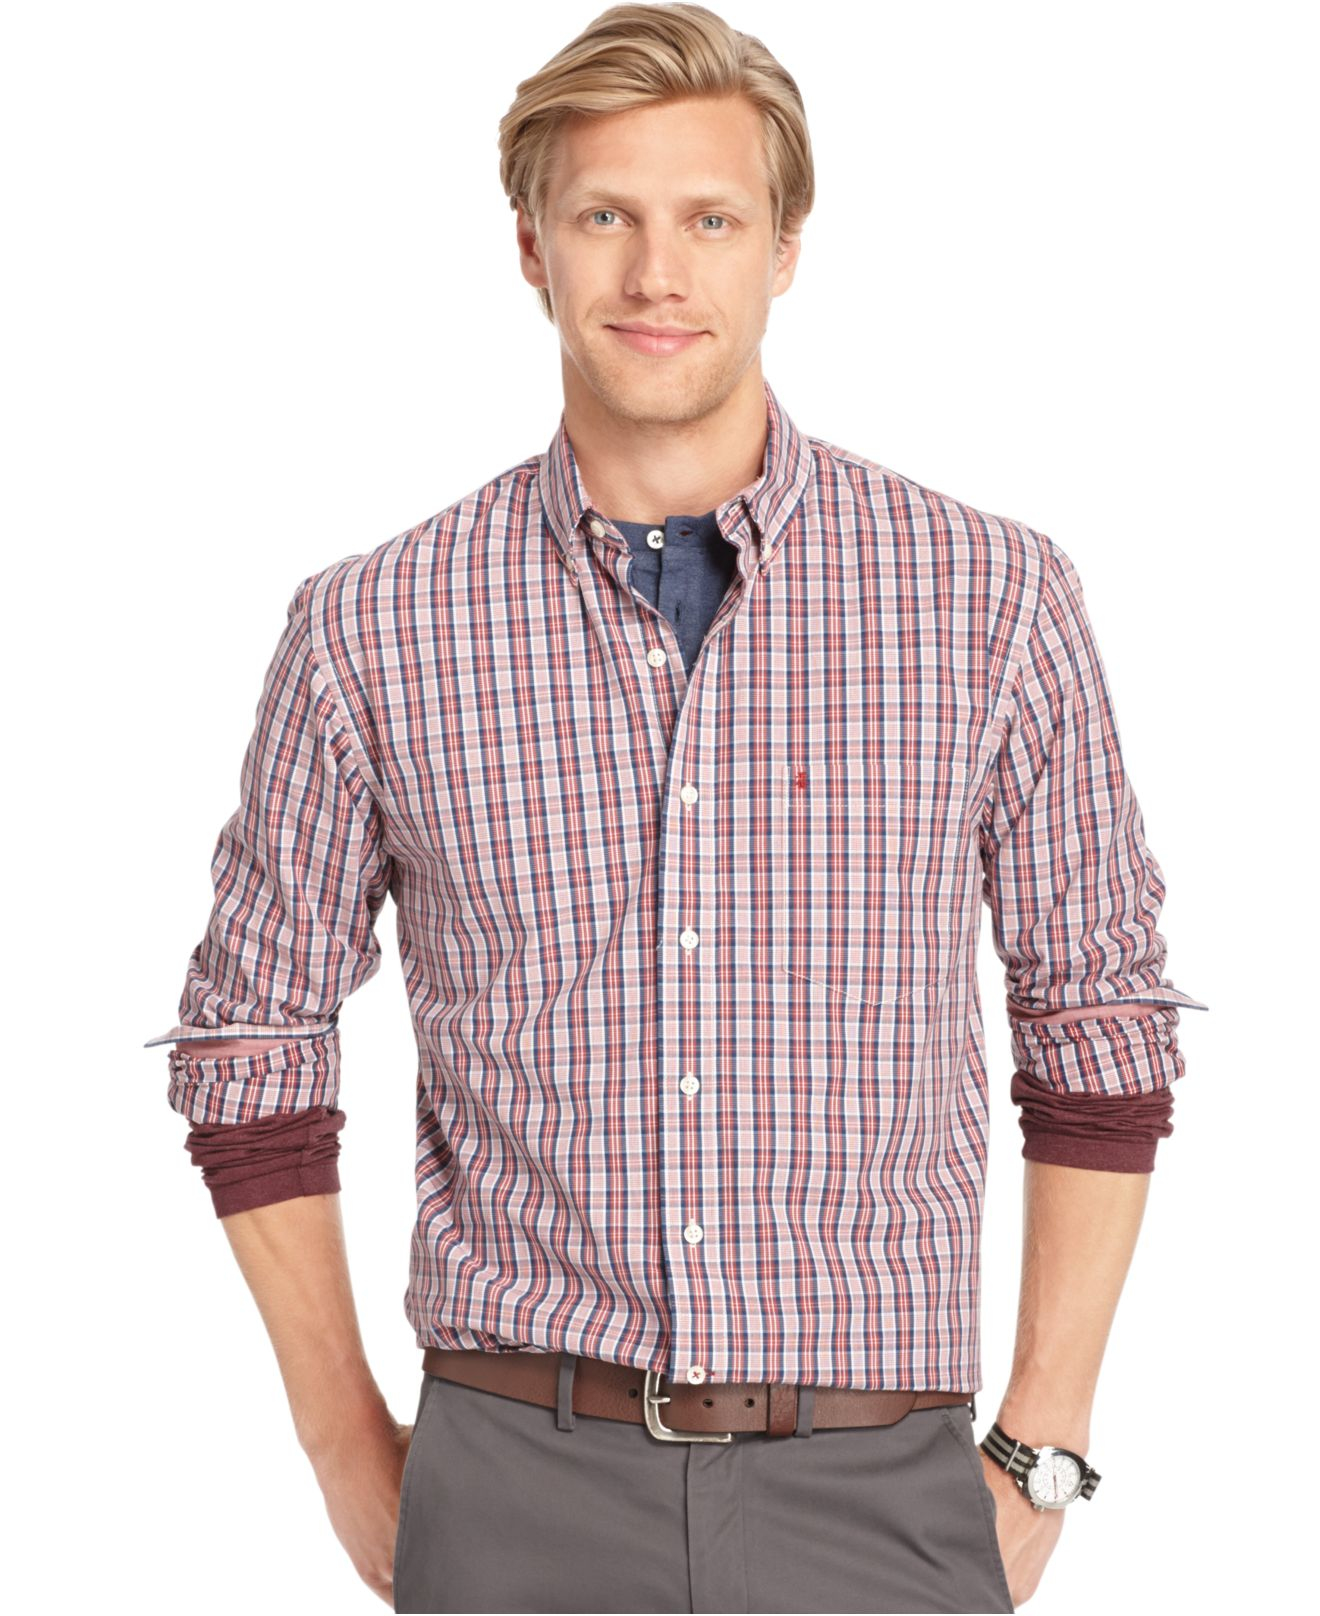 Izod medium plaid button down shirt in red for men russet for Izod button down shirts